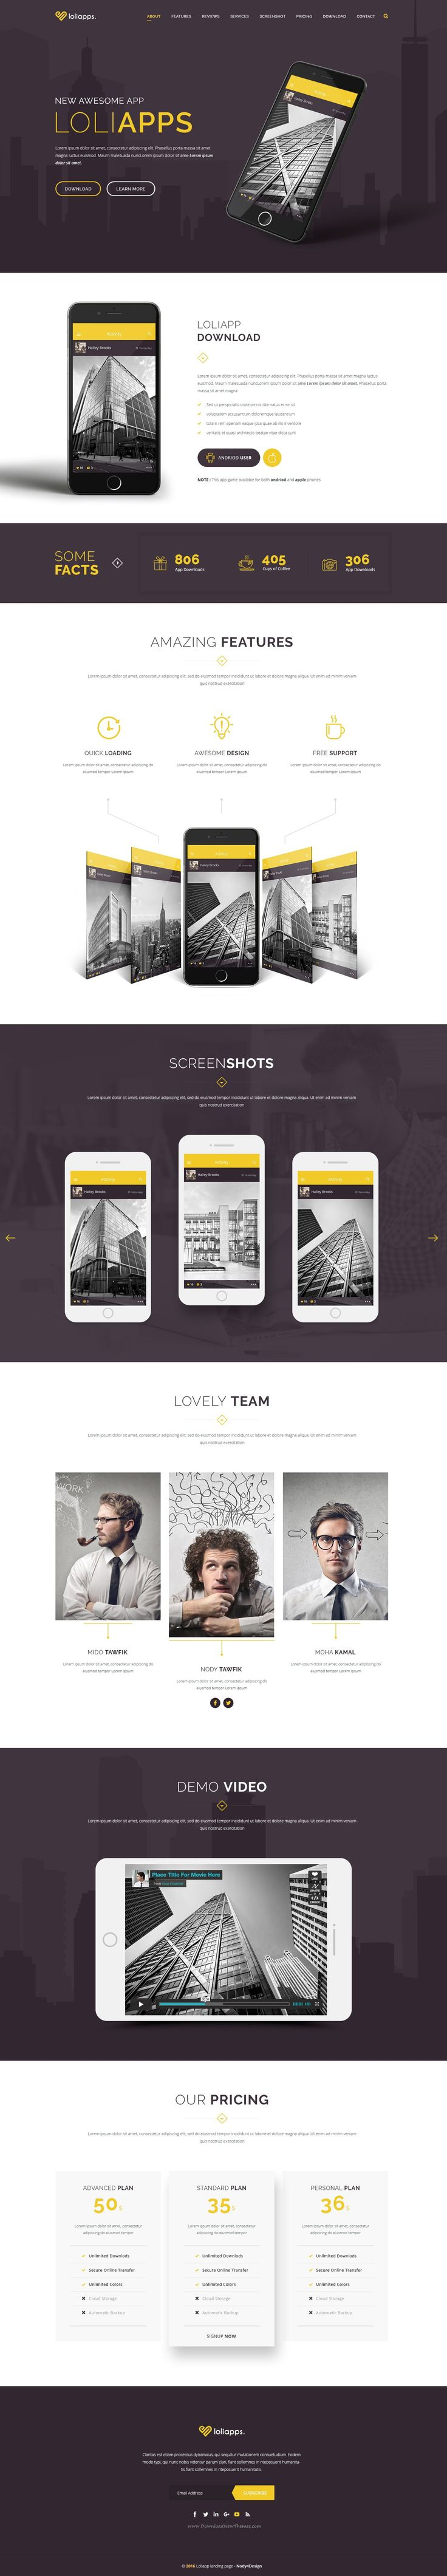 Loliapps is App Landing Page Template, this design has an extremely well-layered #PSD where you will be able to find everything you need in an instance. #landingpage #template